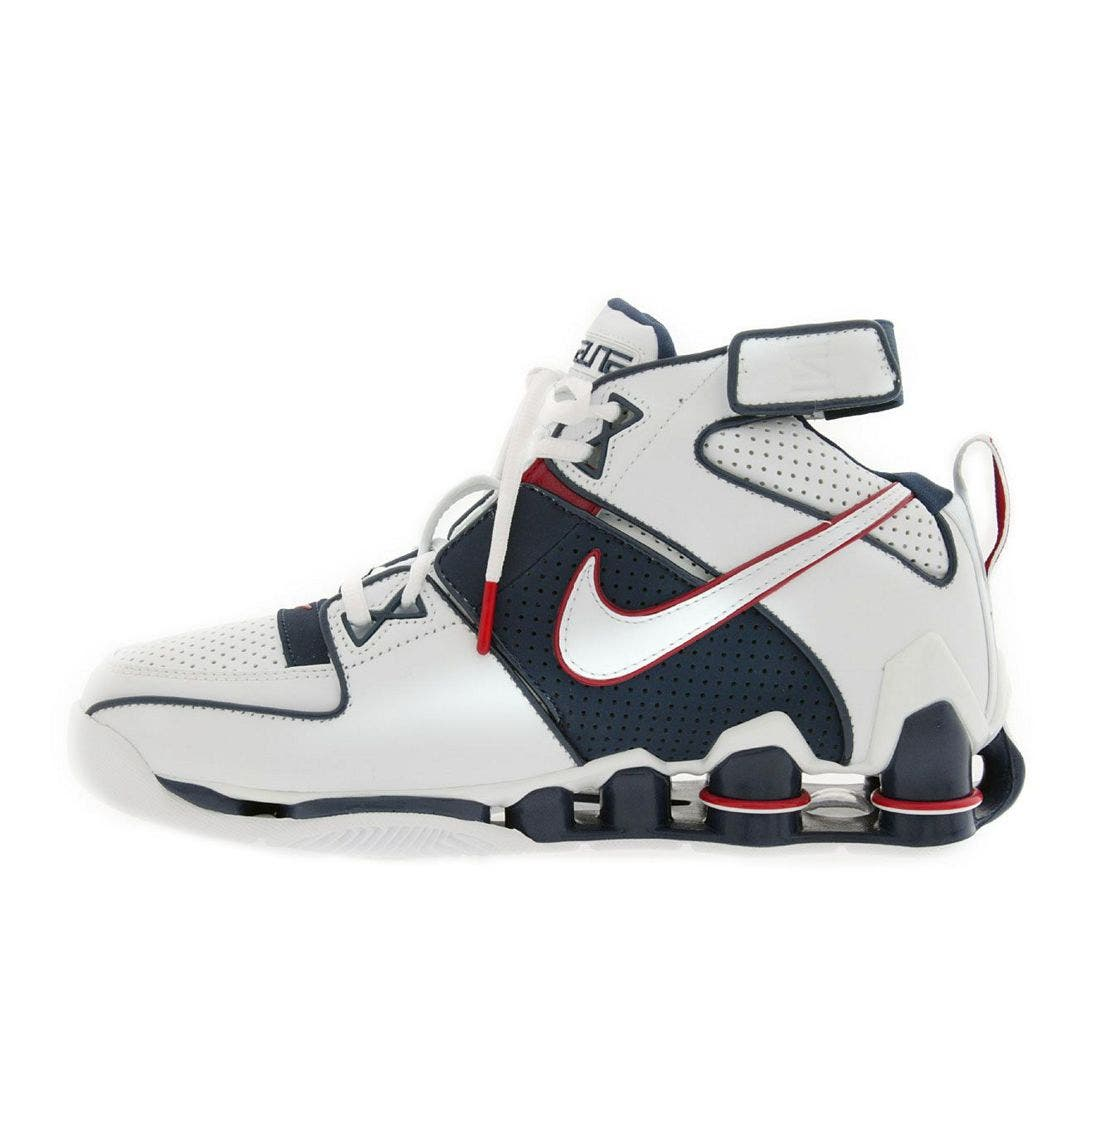 size 40 d9014 0cac1 ... coupon code nike shox bomber basketball shoe men nordstrom a348f 2345b